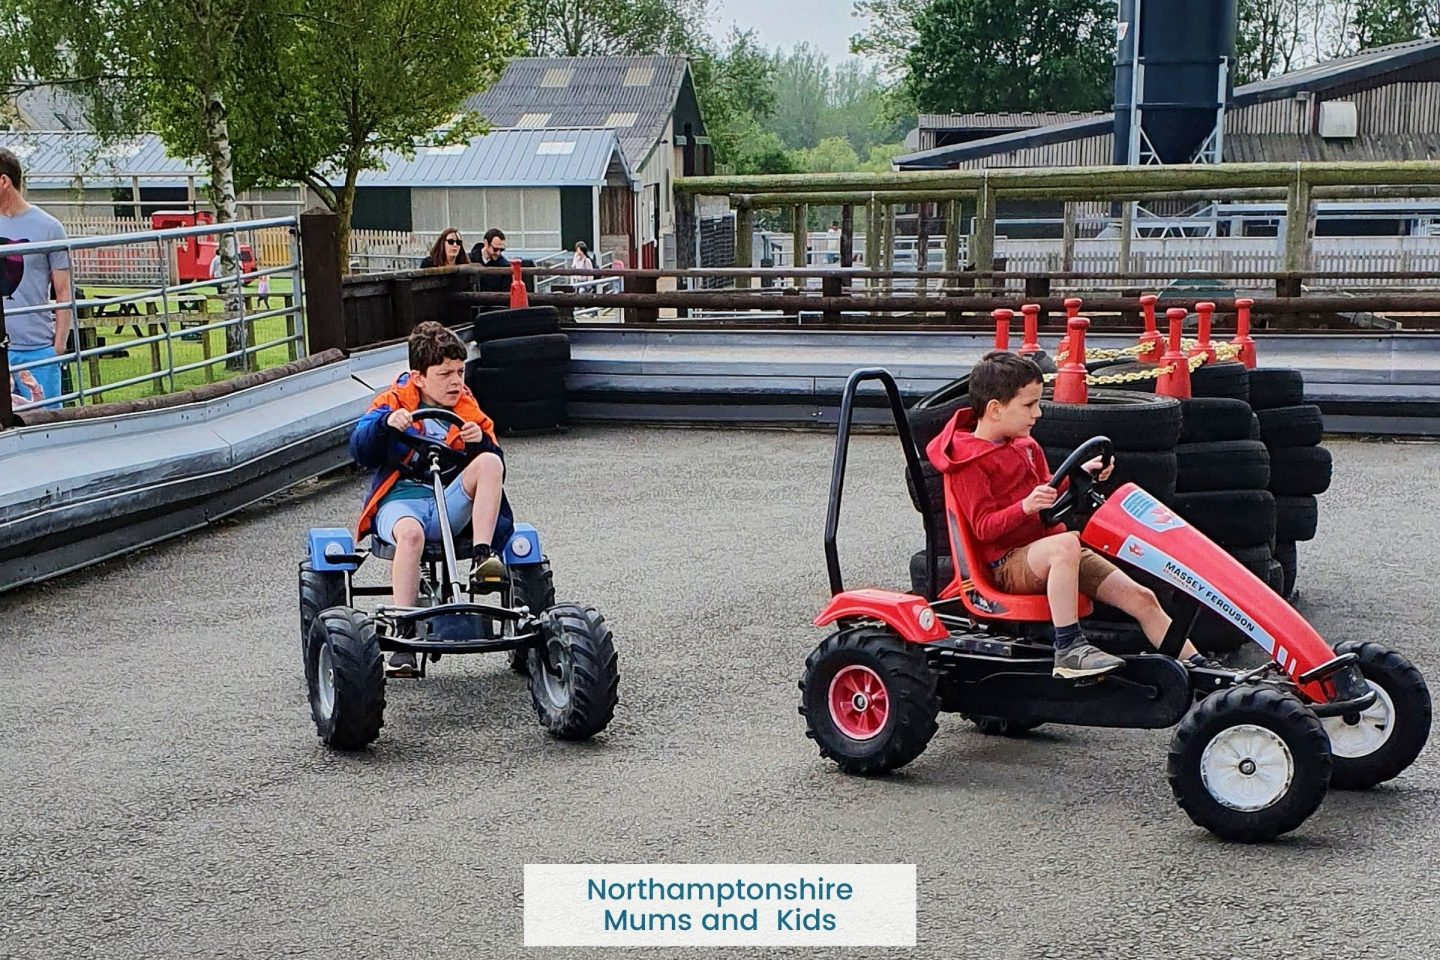 Rookery Open Farm is a great half day out. With animals to see, petting corners, large indoor and outdoor play areas, pedal tractors and sand play.